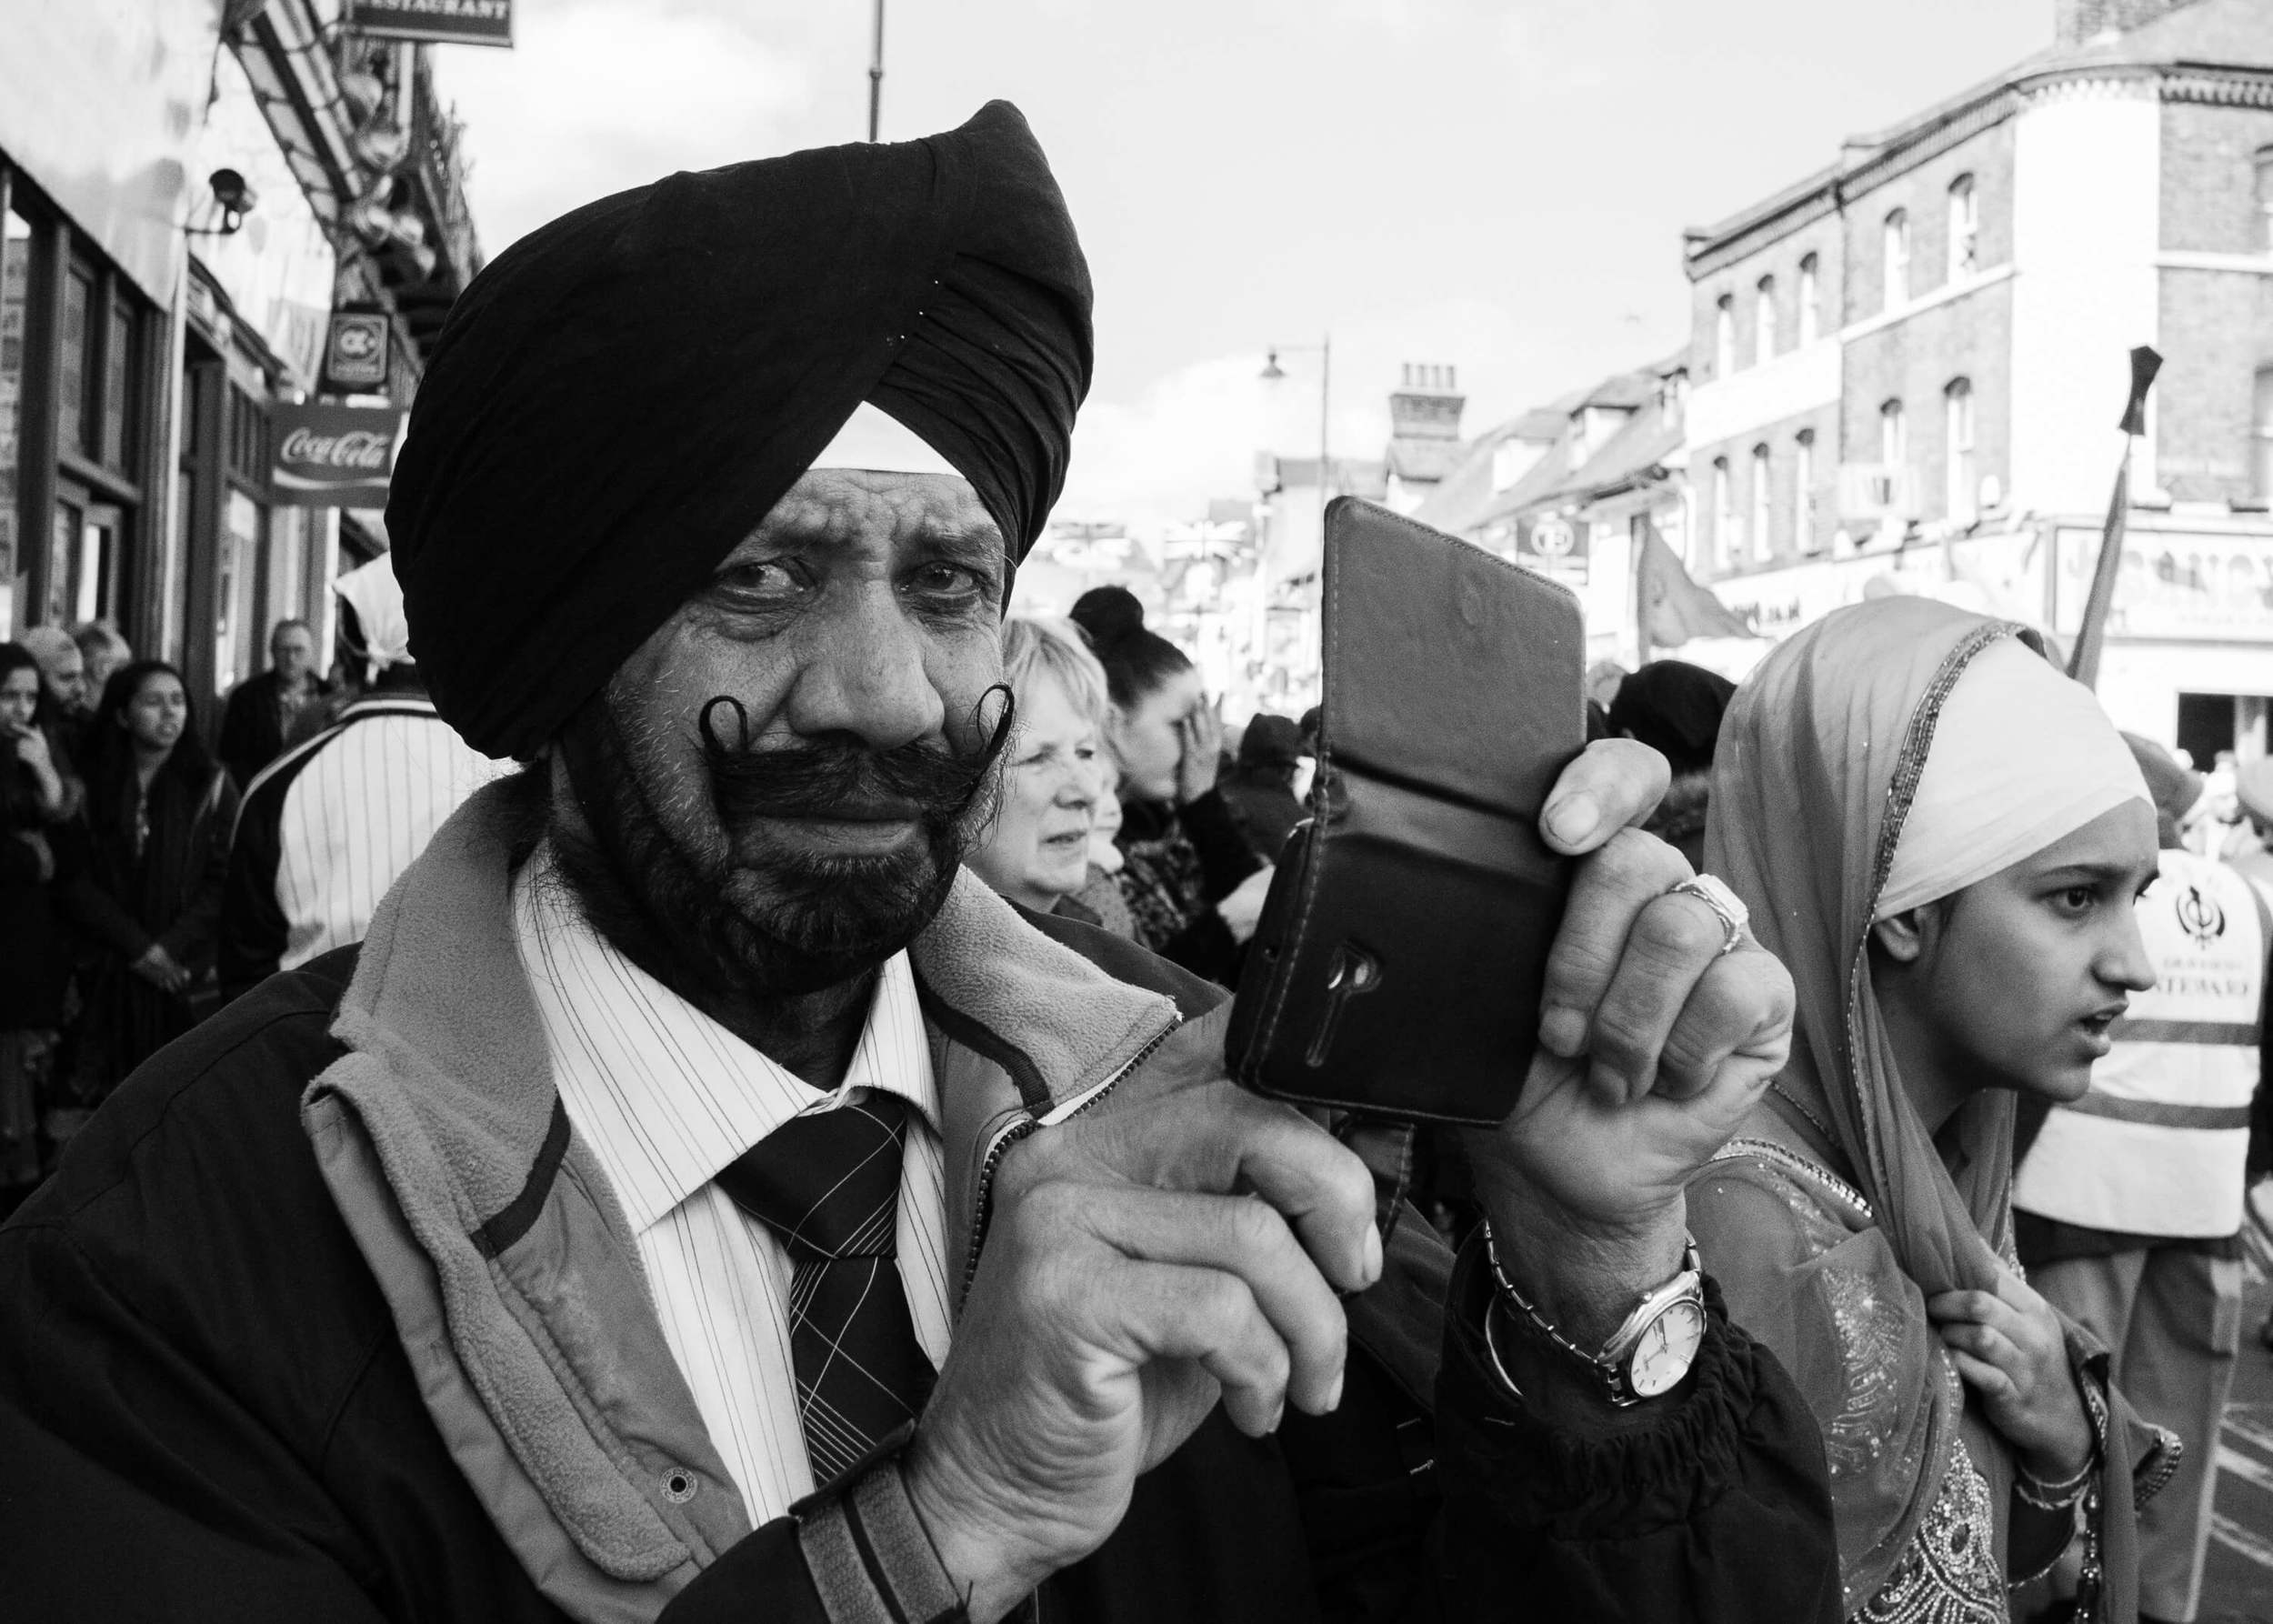 A photograph of a Sikh gentleman taken at a festival in Gravesend, Kent